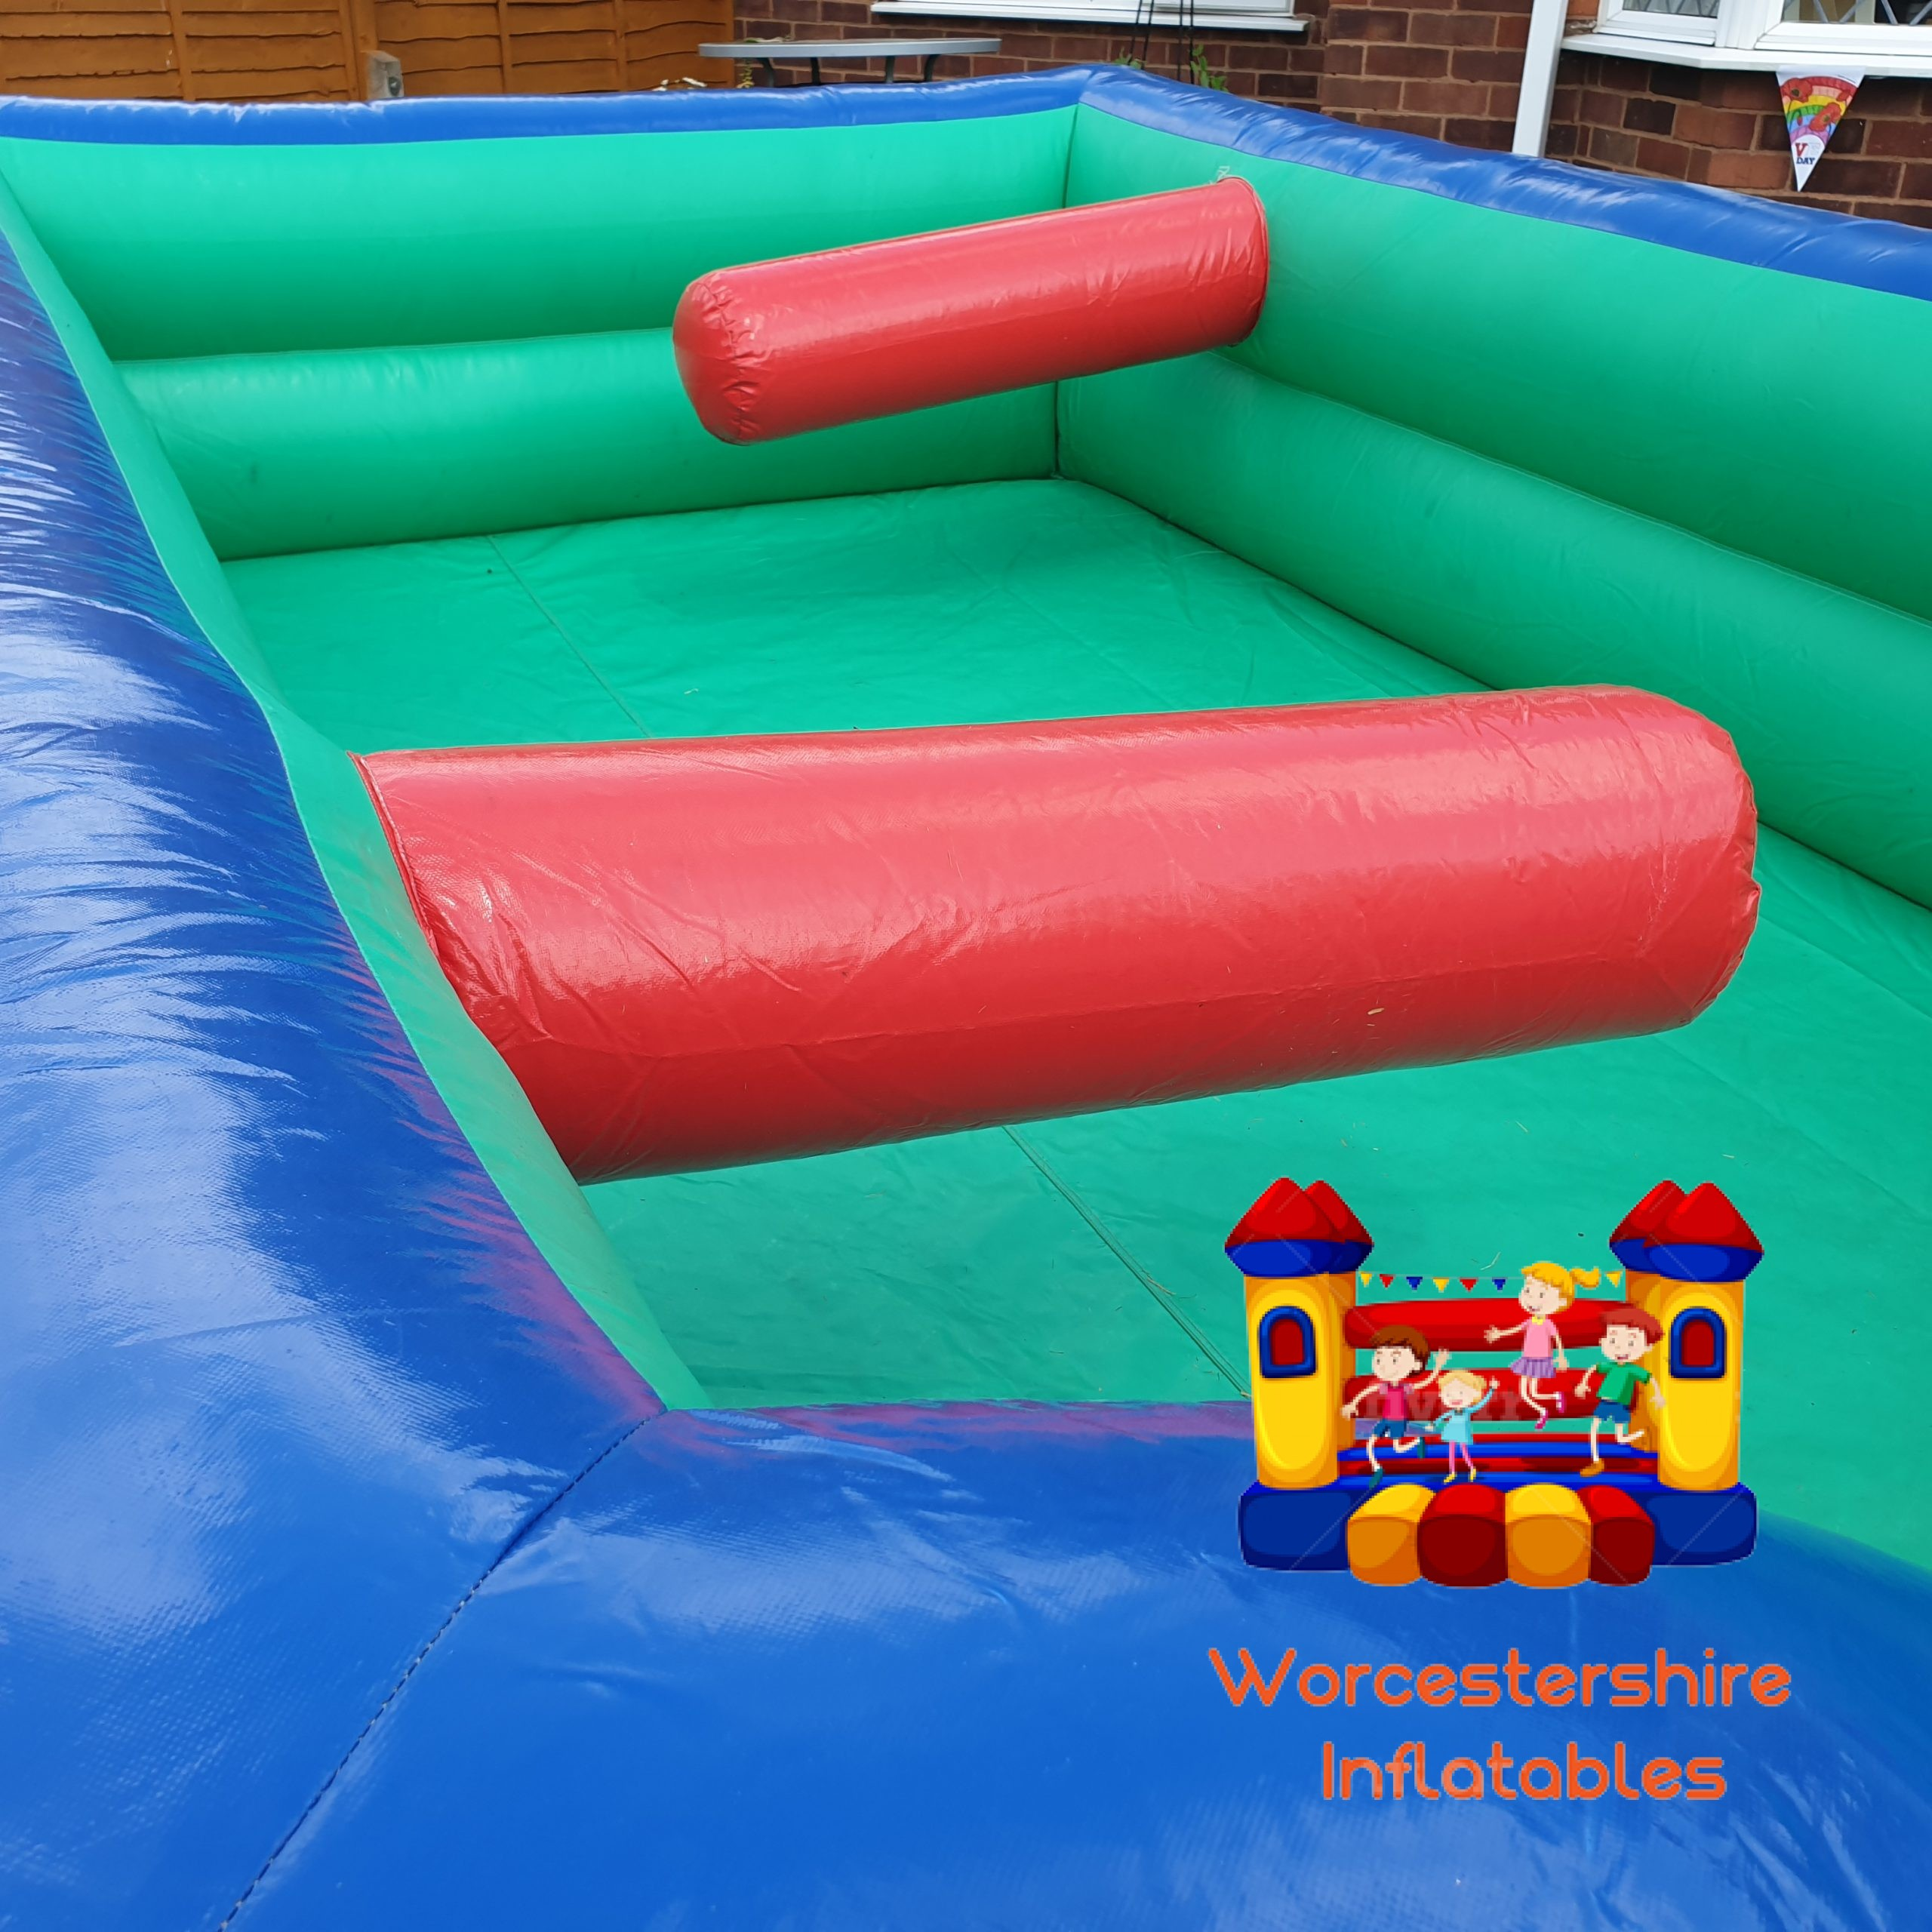 soft play area - Worcestershire inflatables